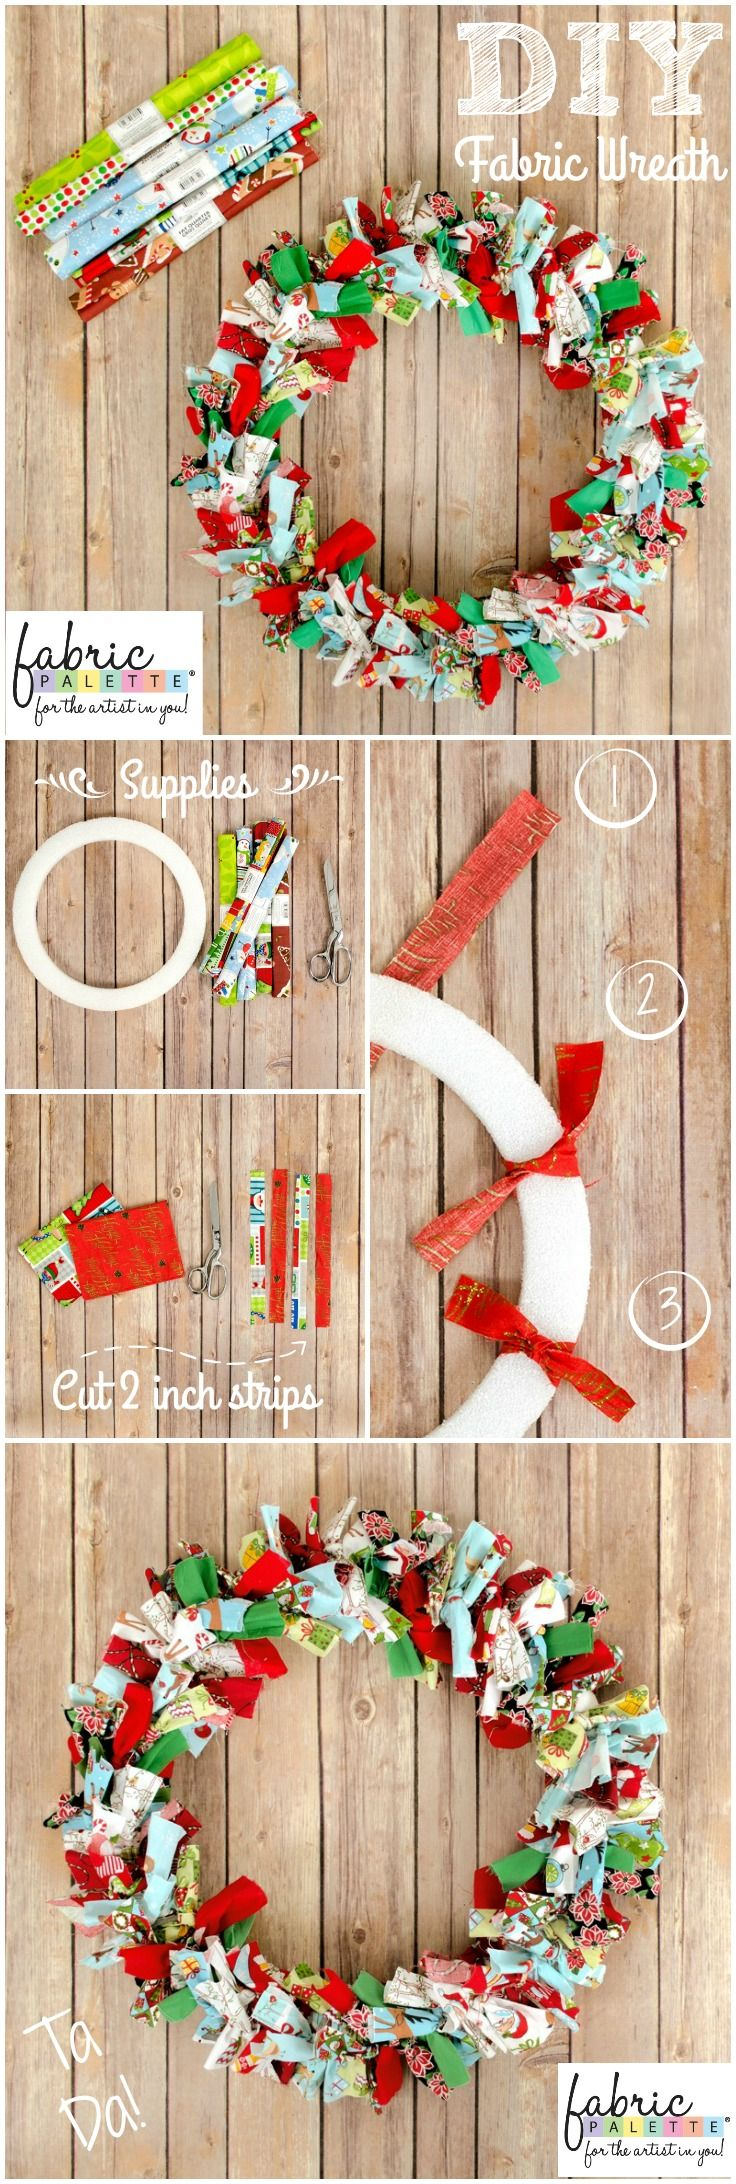 Create your own fabric wreath this holiday! All it takes is a wreath form, fat quarters, and scissors to create a beautiful holiday wreath. View all the steps in the image below and be sure to pin it for later!